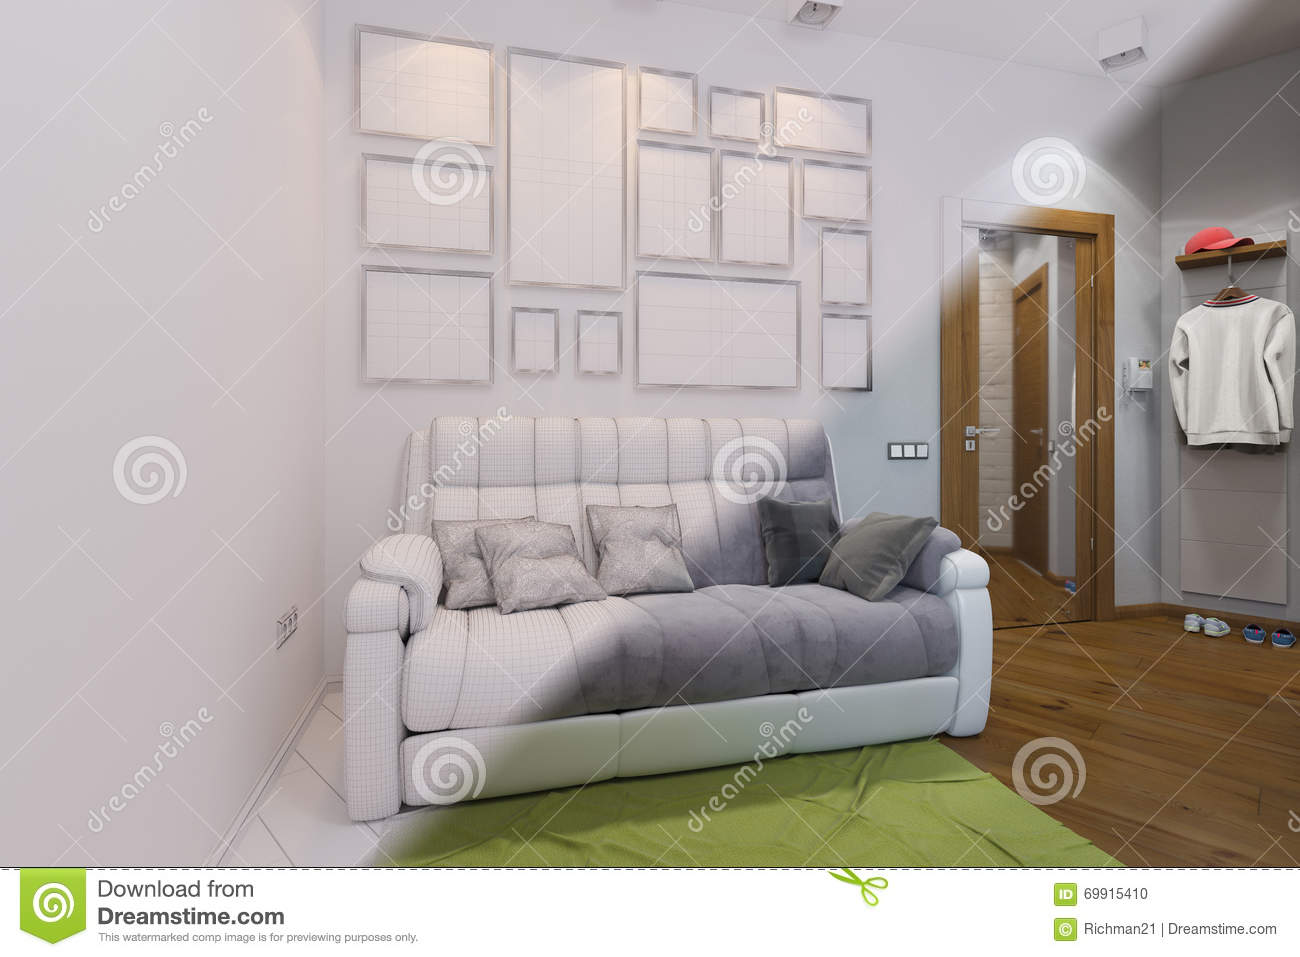 3d render of living room and hall interior design in a modern st